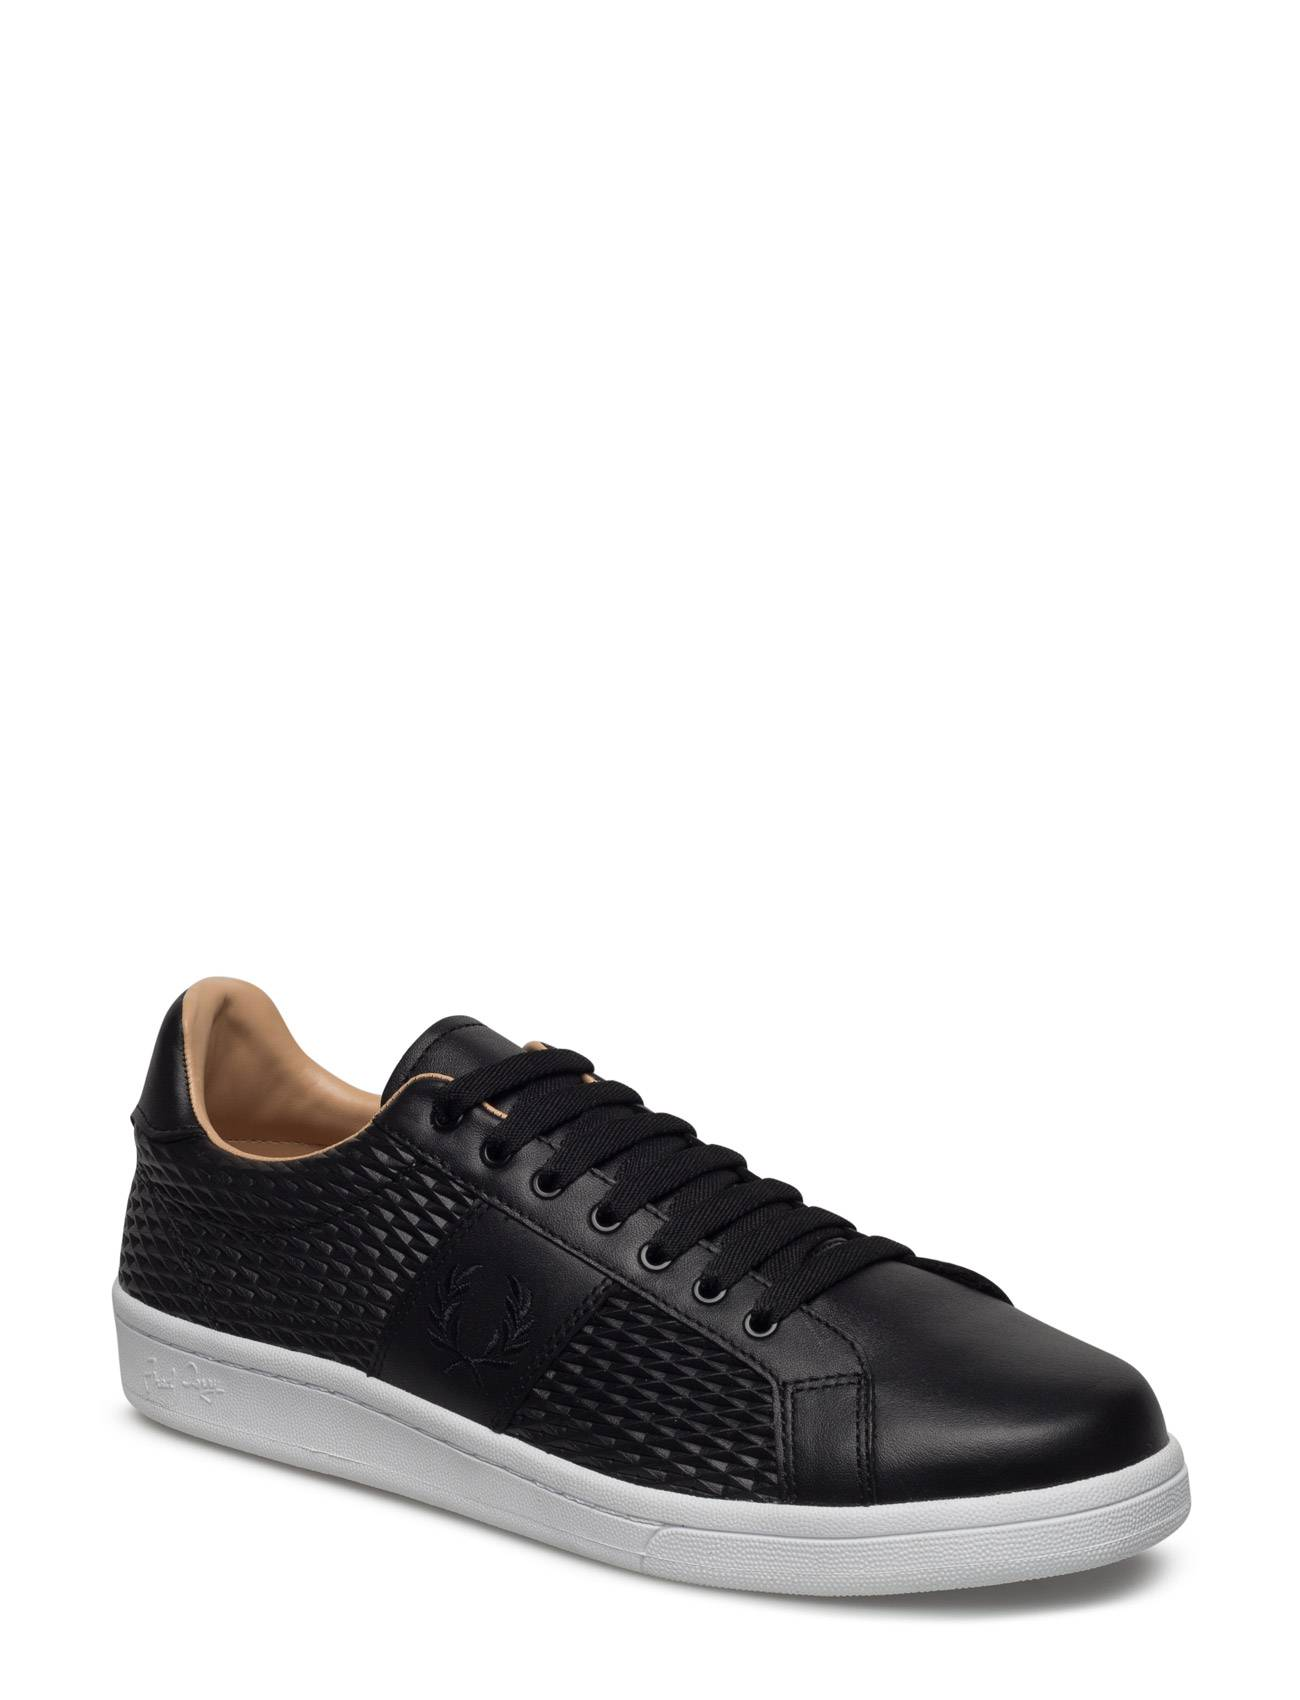 Fred Perry B721 Perf Leather